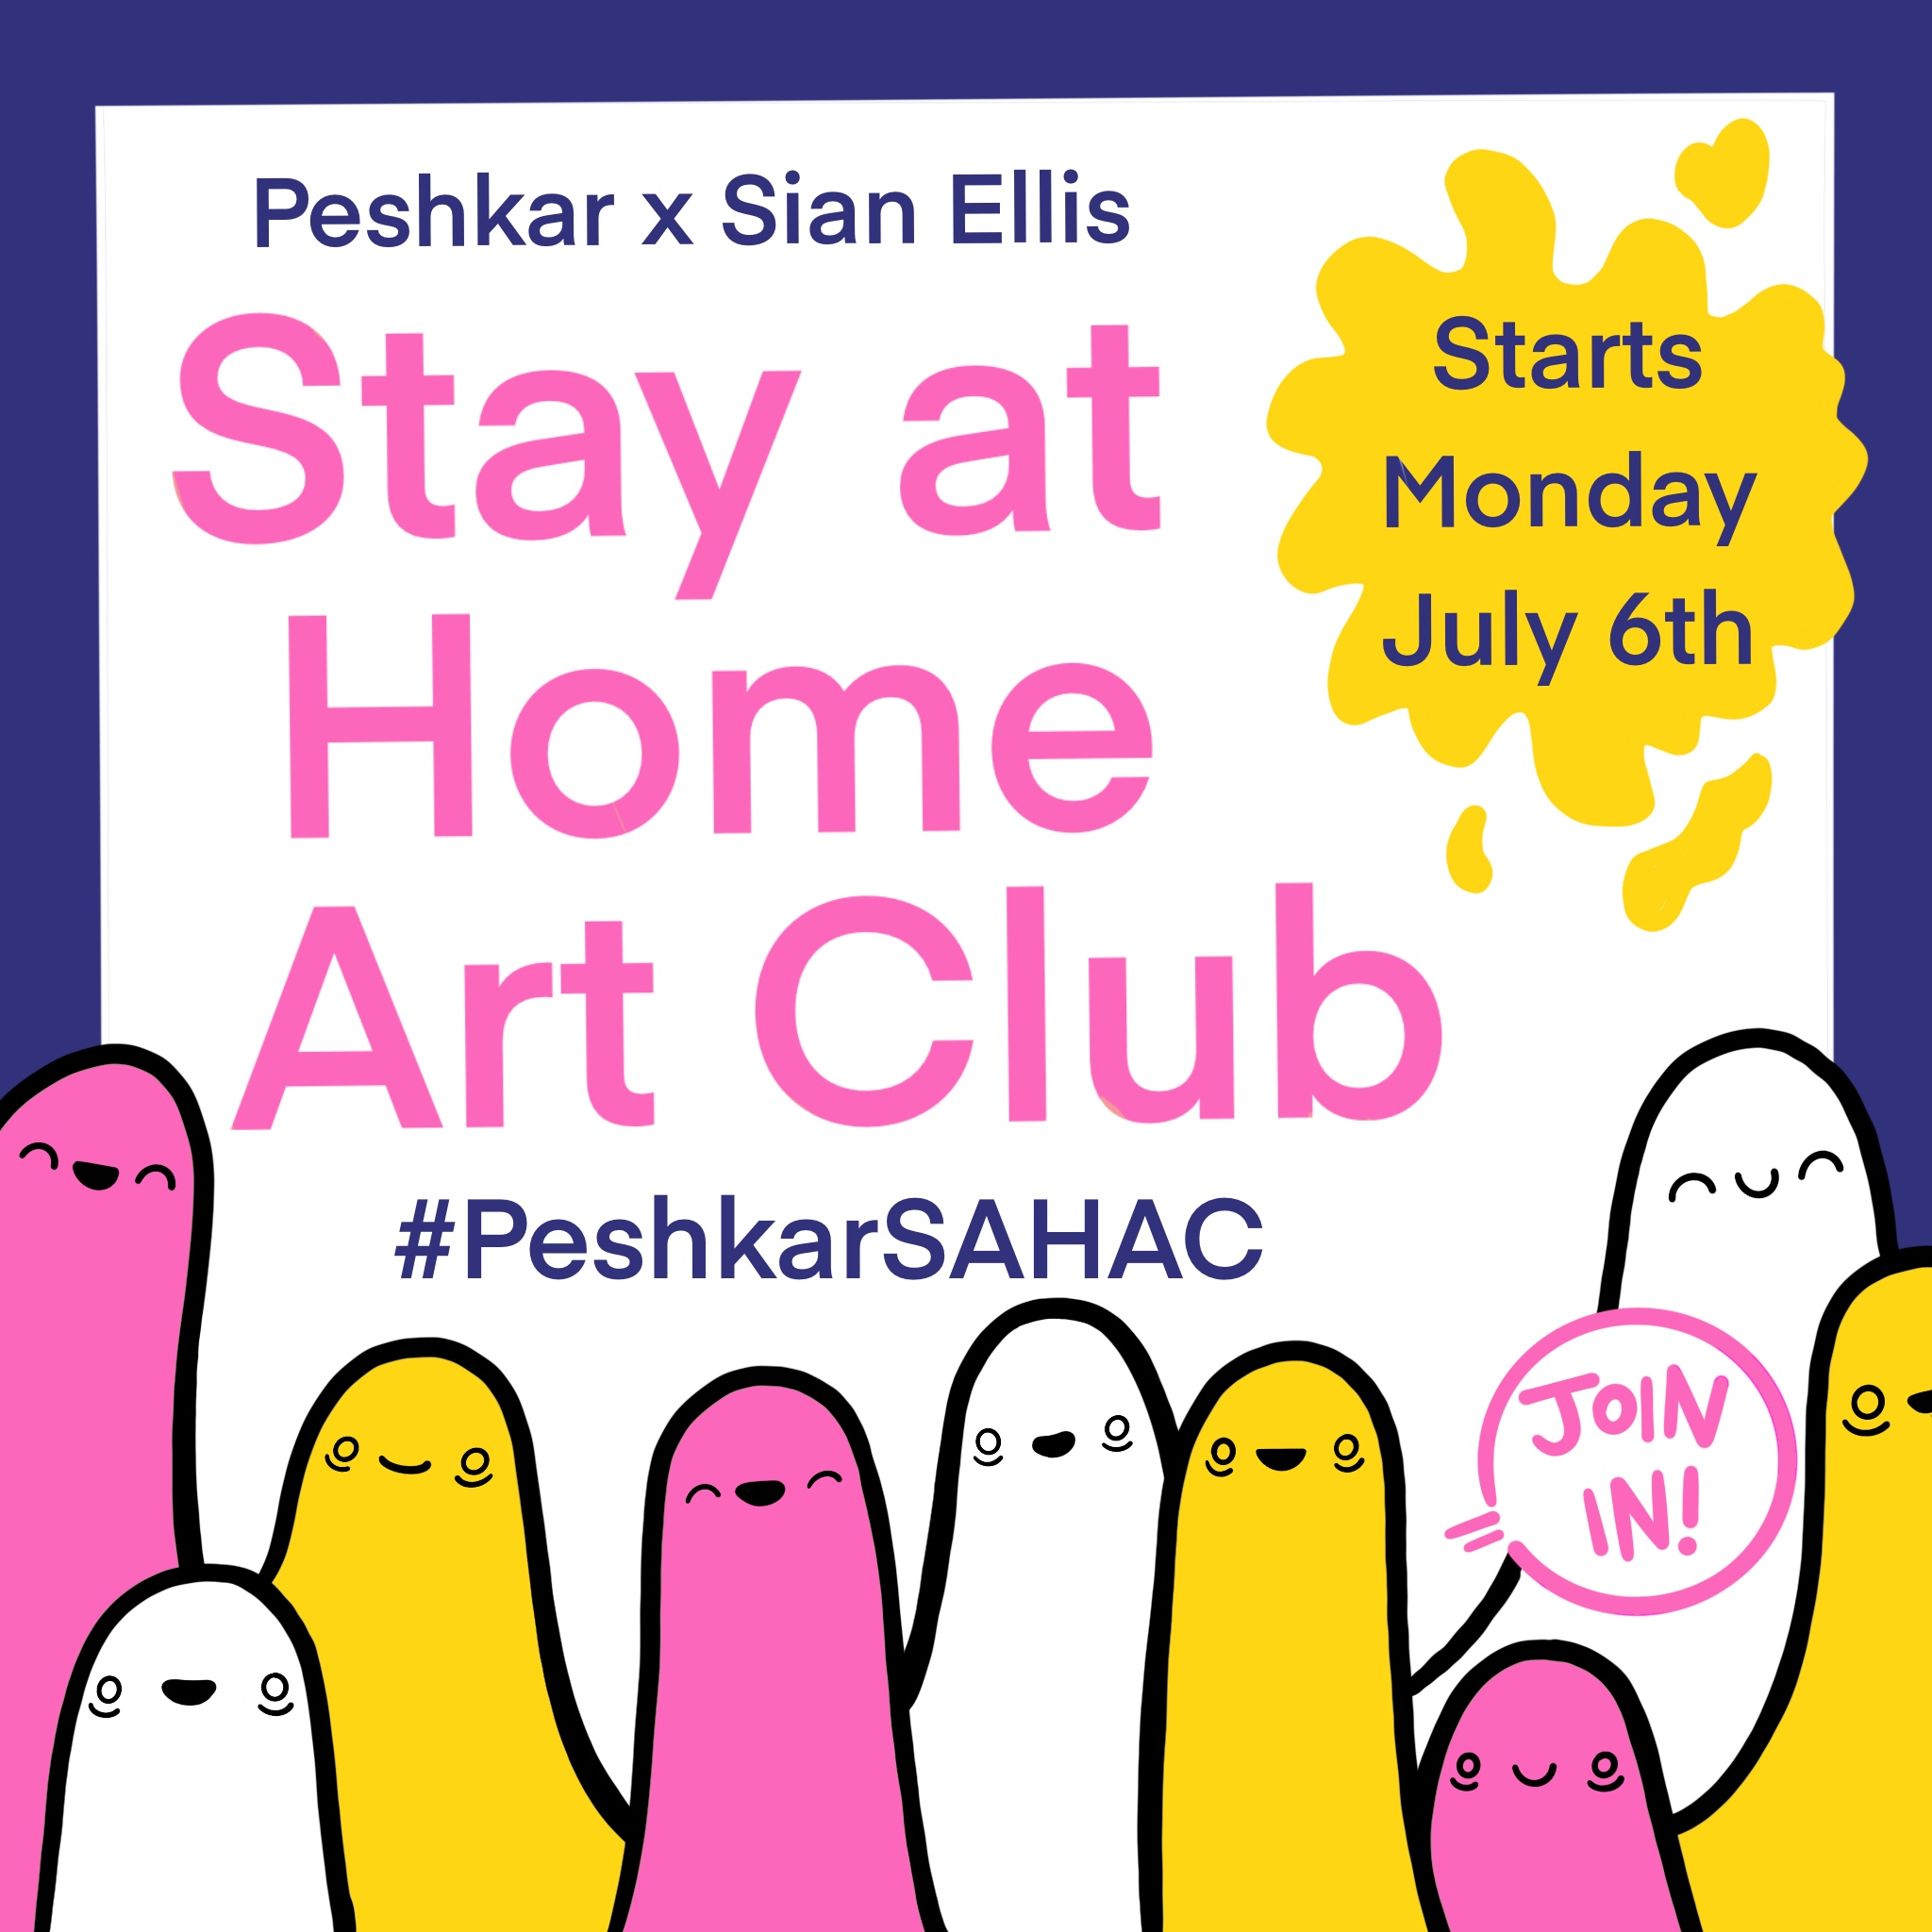 Peshkar Stay at Home Art Club